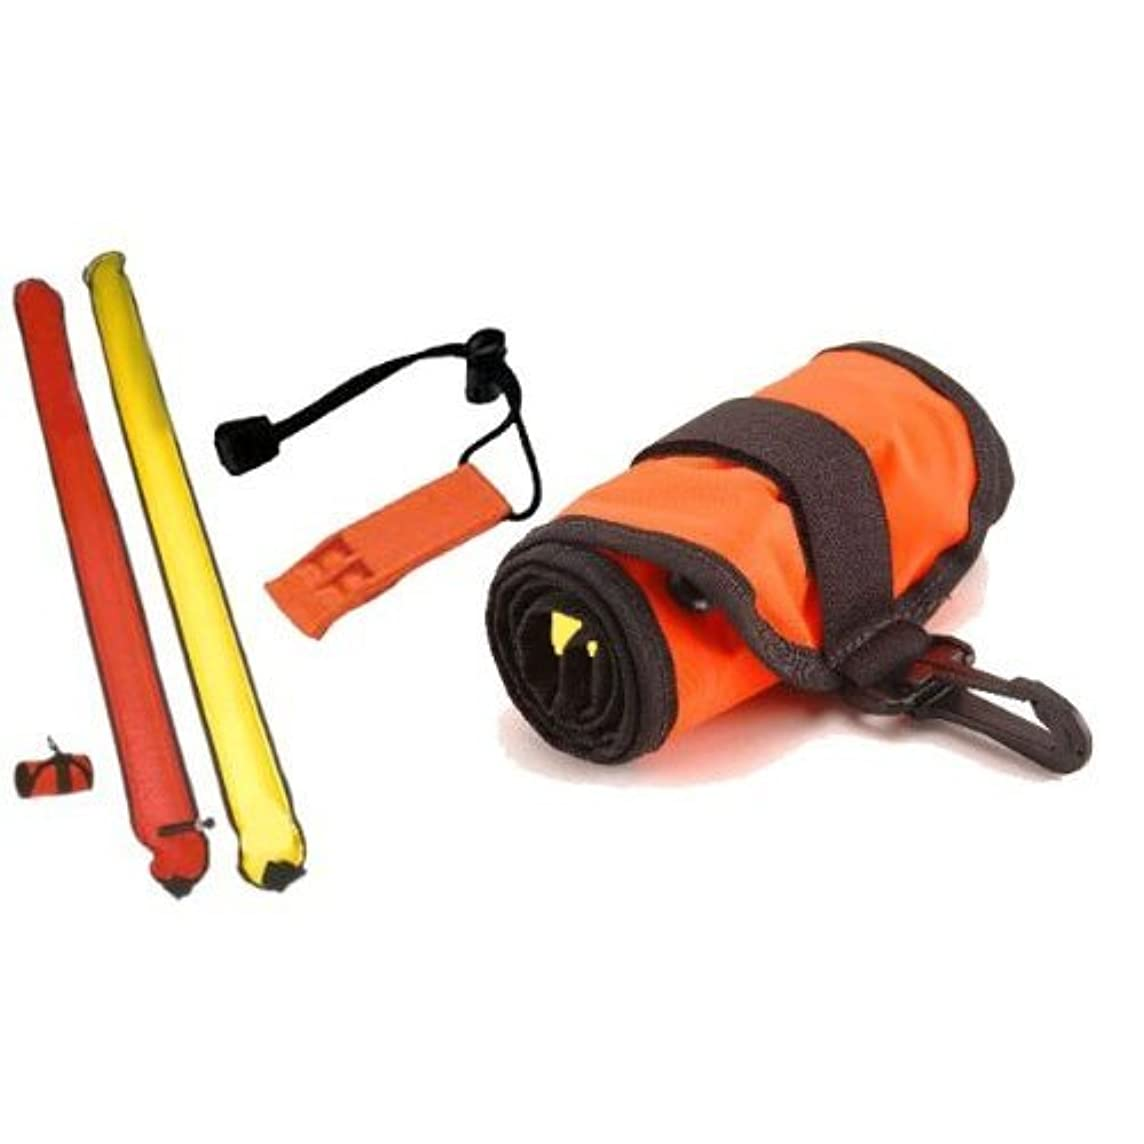 101SNORKEL 2 Tone / 4 ft Scuba Diving Dive Signal/Marker Tube with Inflator, (safety sausage)